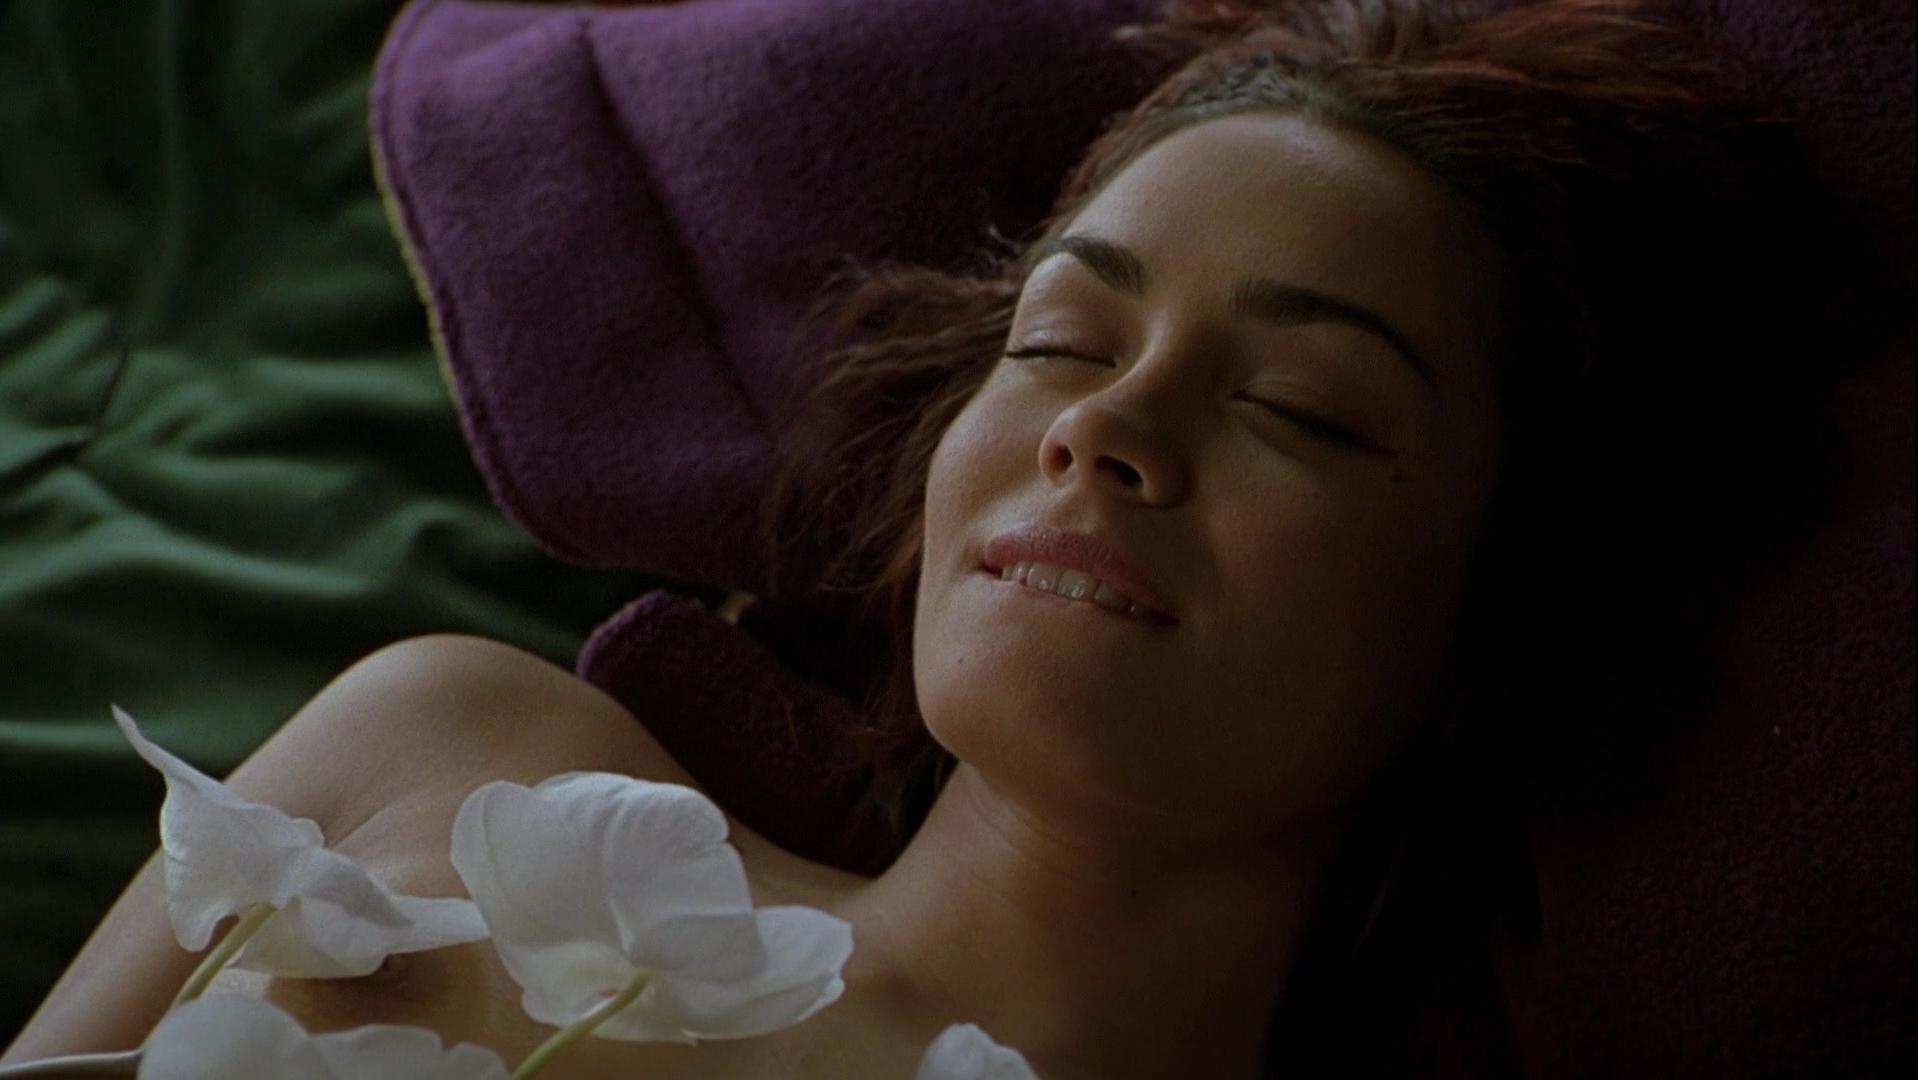 Shannyn Sossamon nude - 40 Days and 40 Nights (2002)